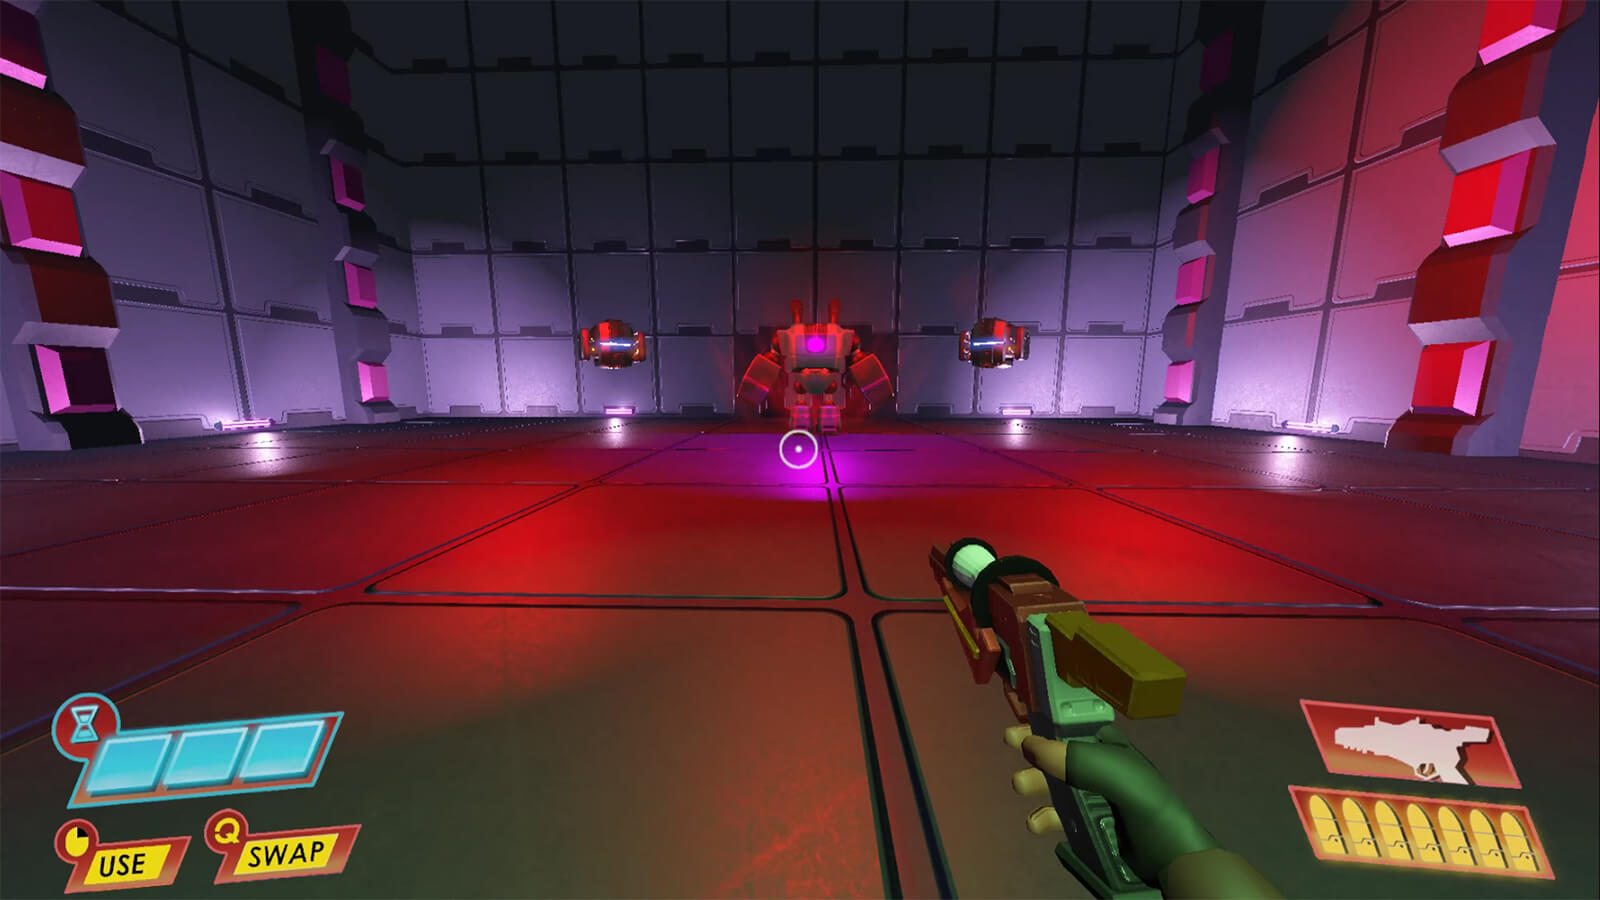 First-person view of large, sterile, room holding a futuristic pistol aimed at a tall attack robot to the front.